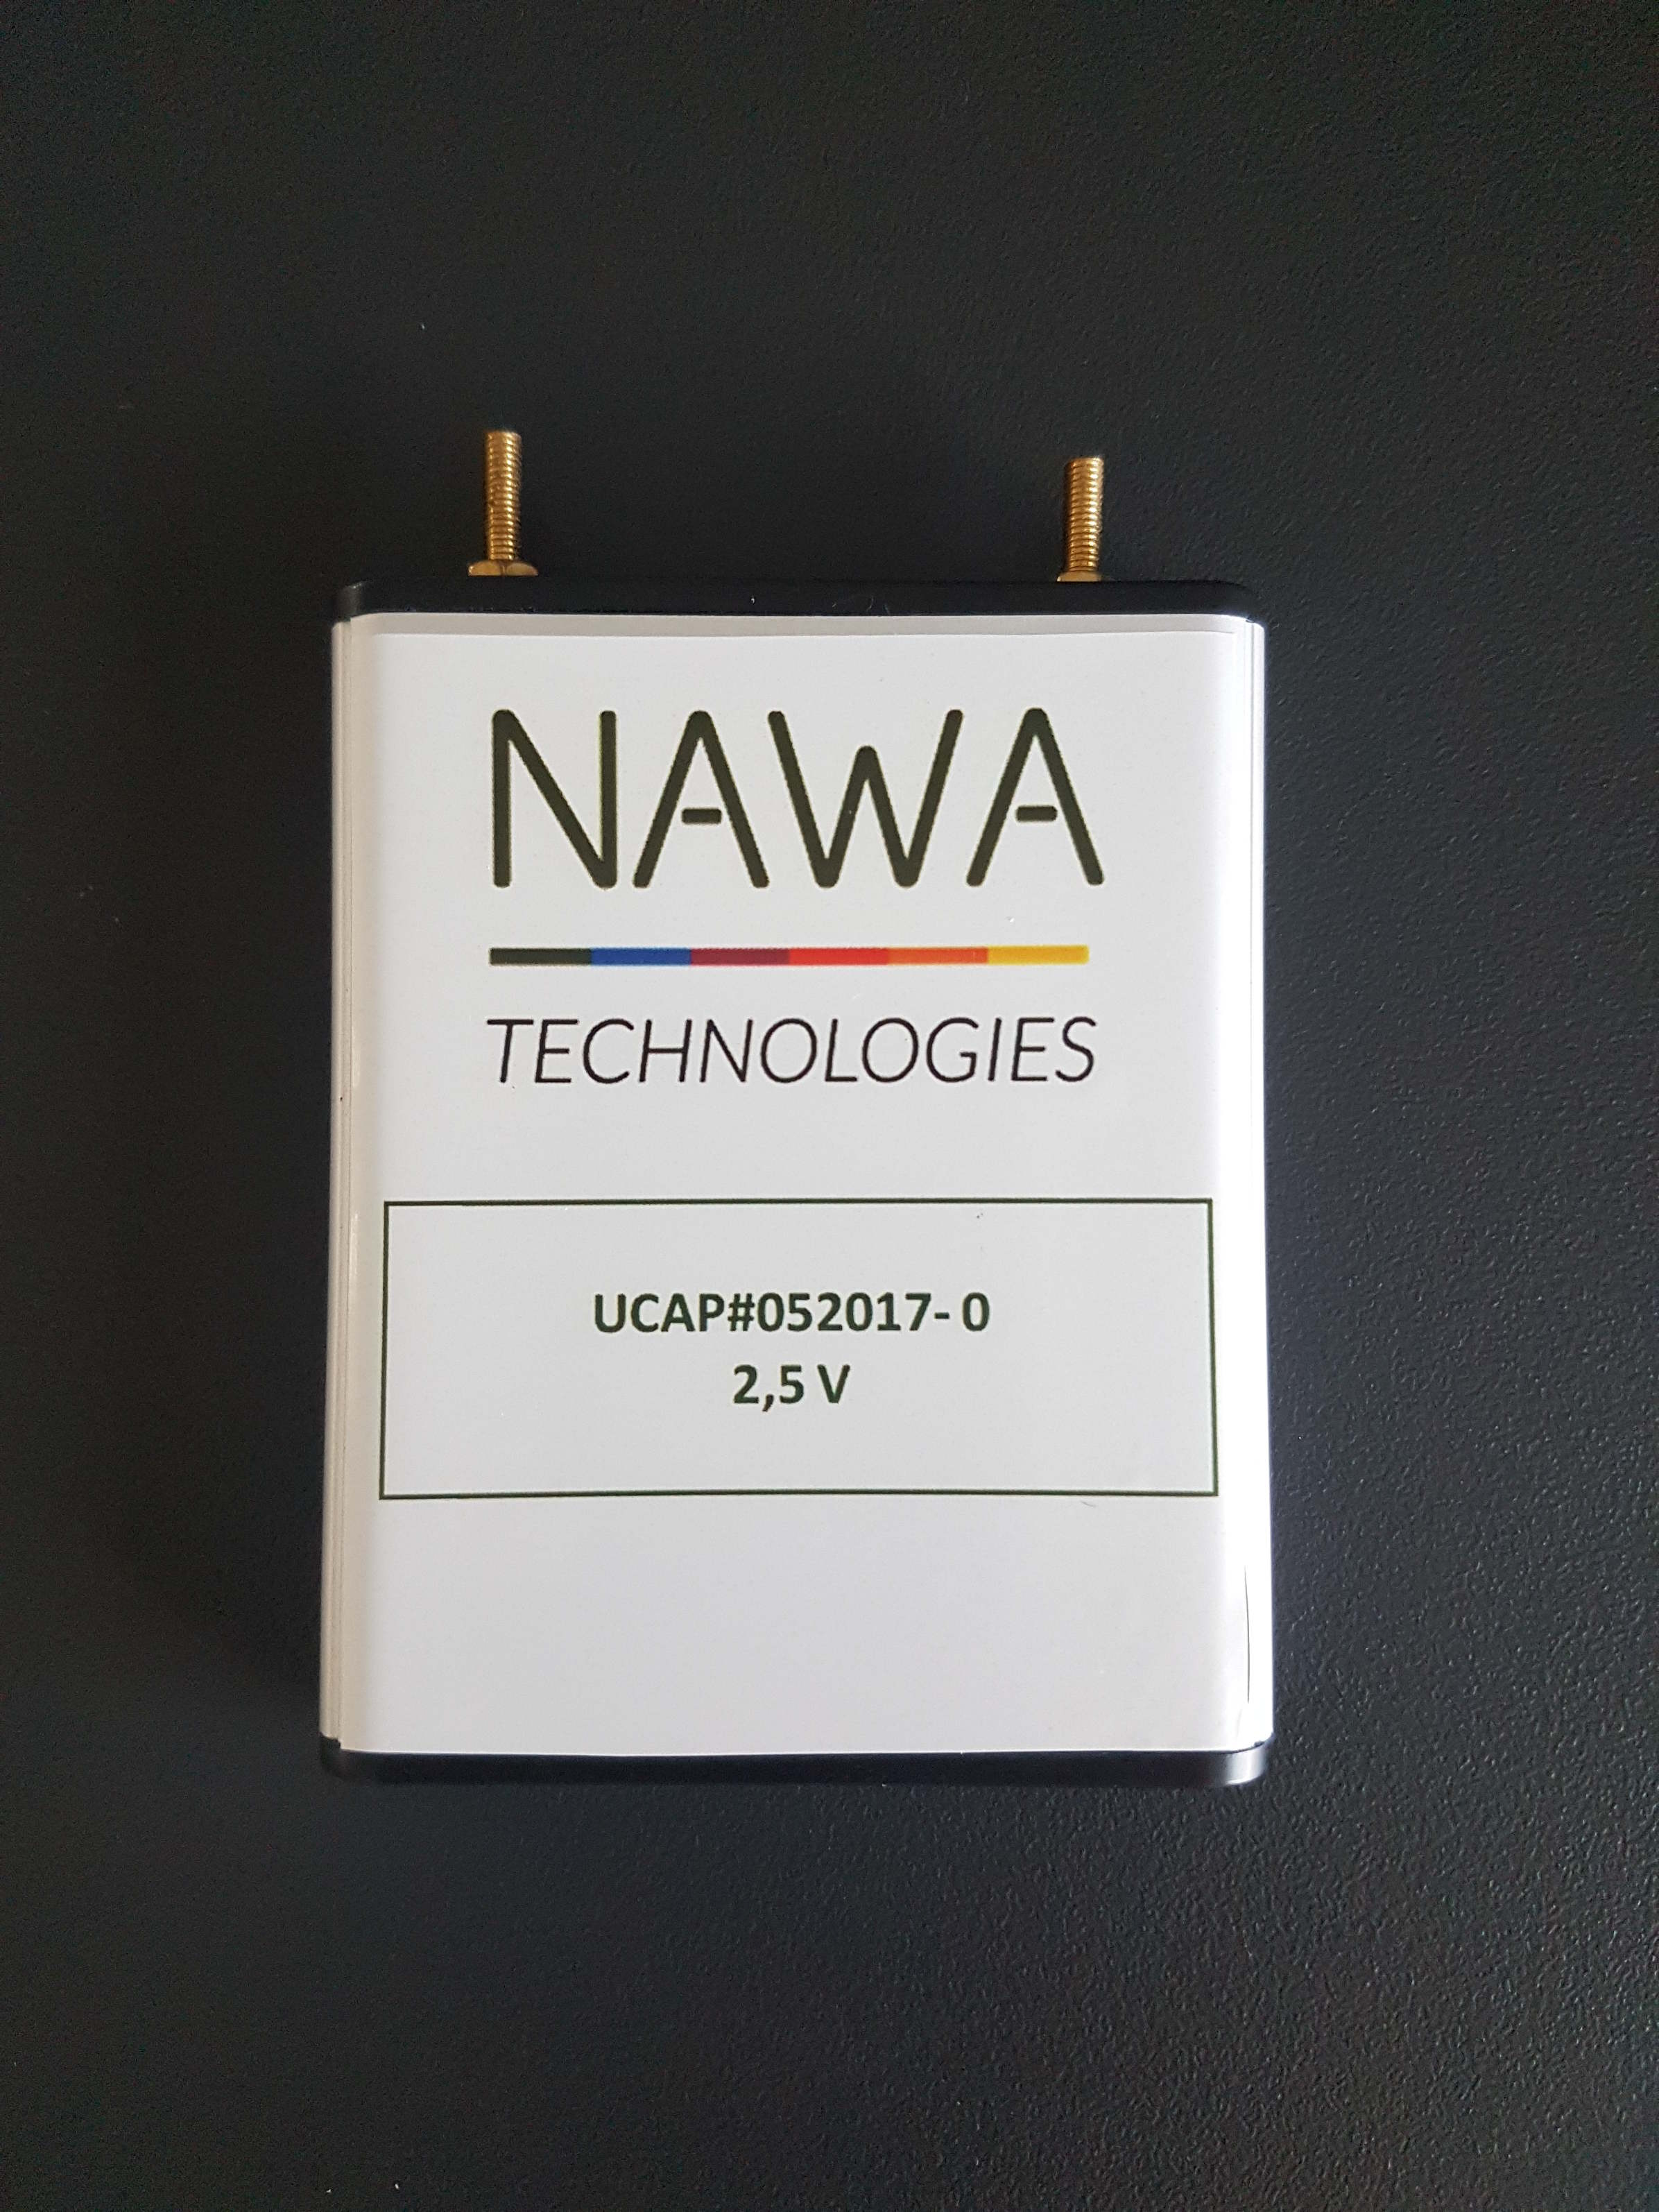 NAWA Technologies revolutionizes energy storage with new ultra fast